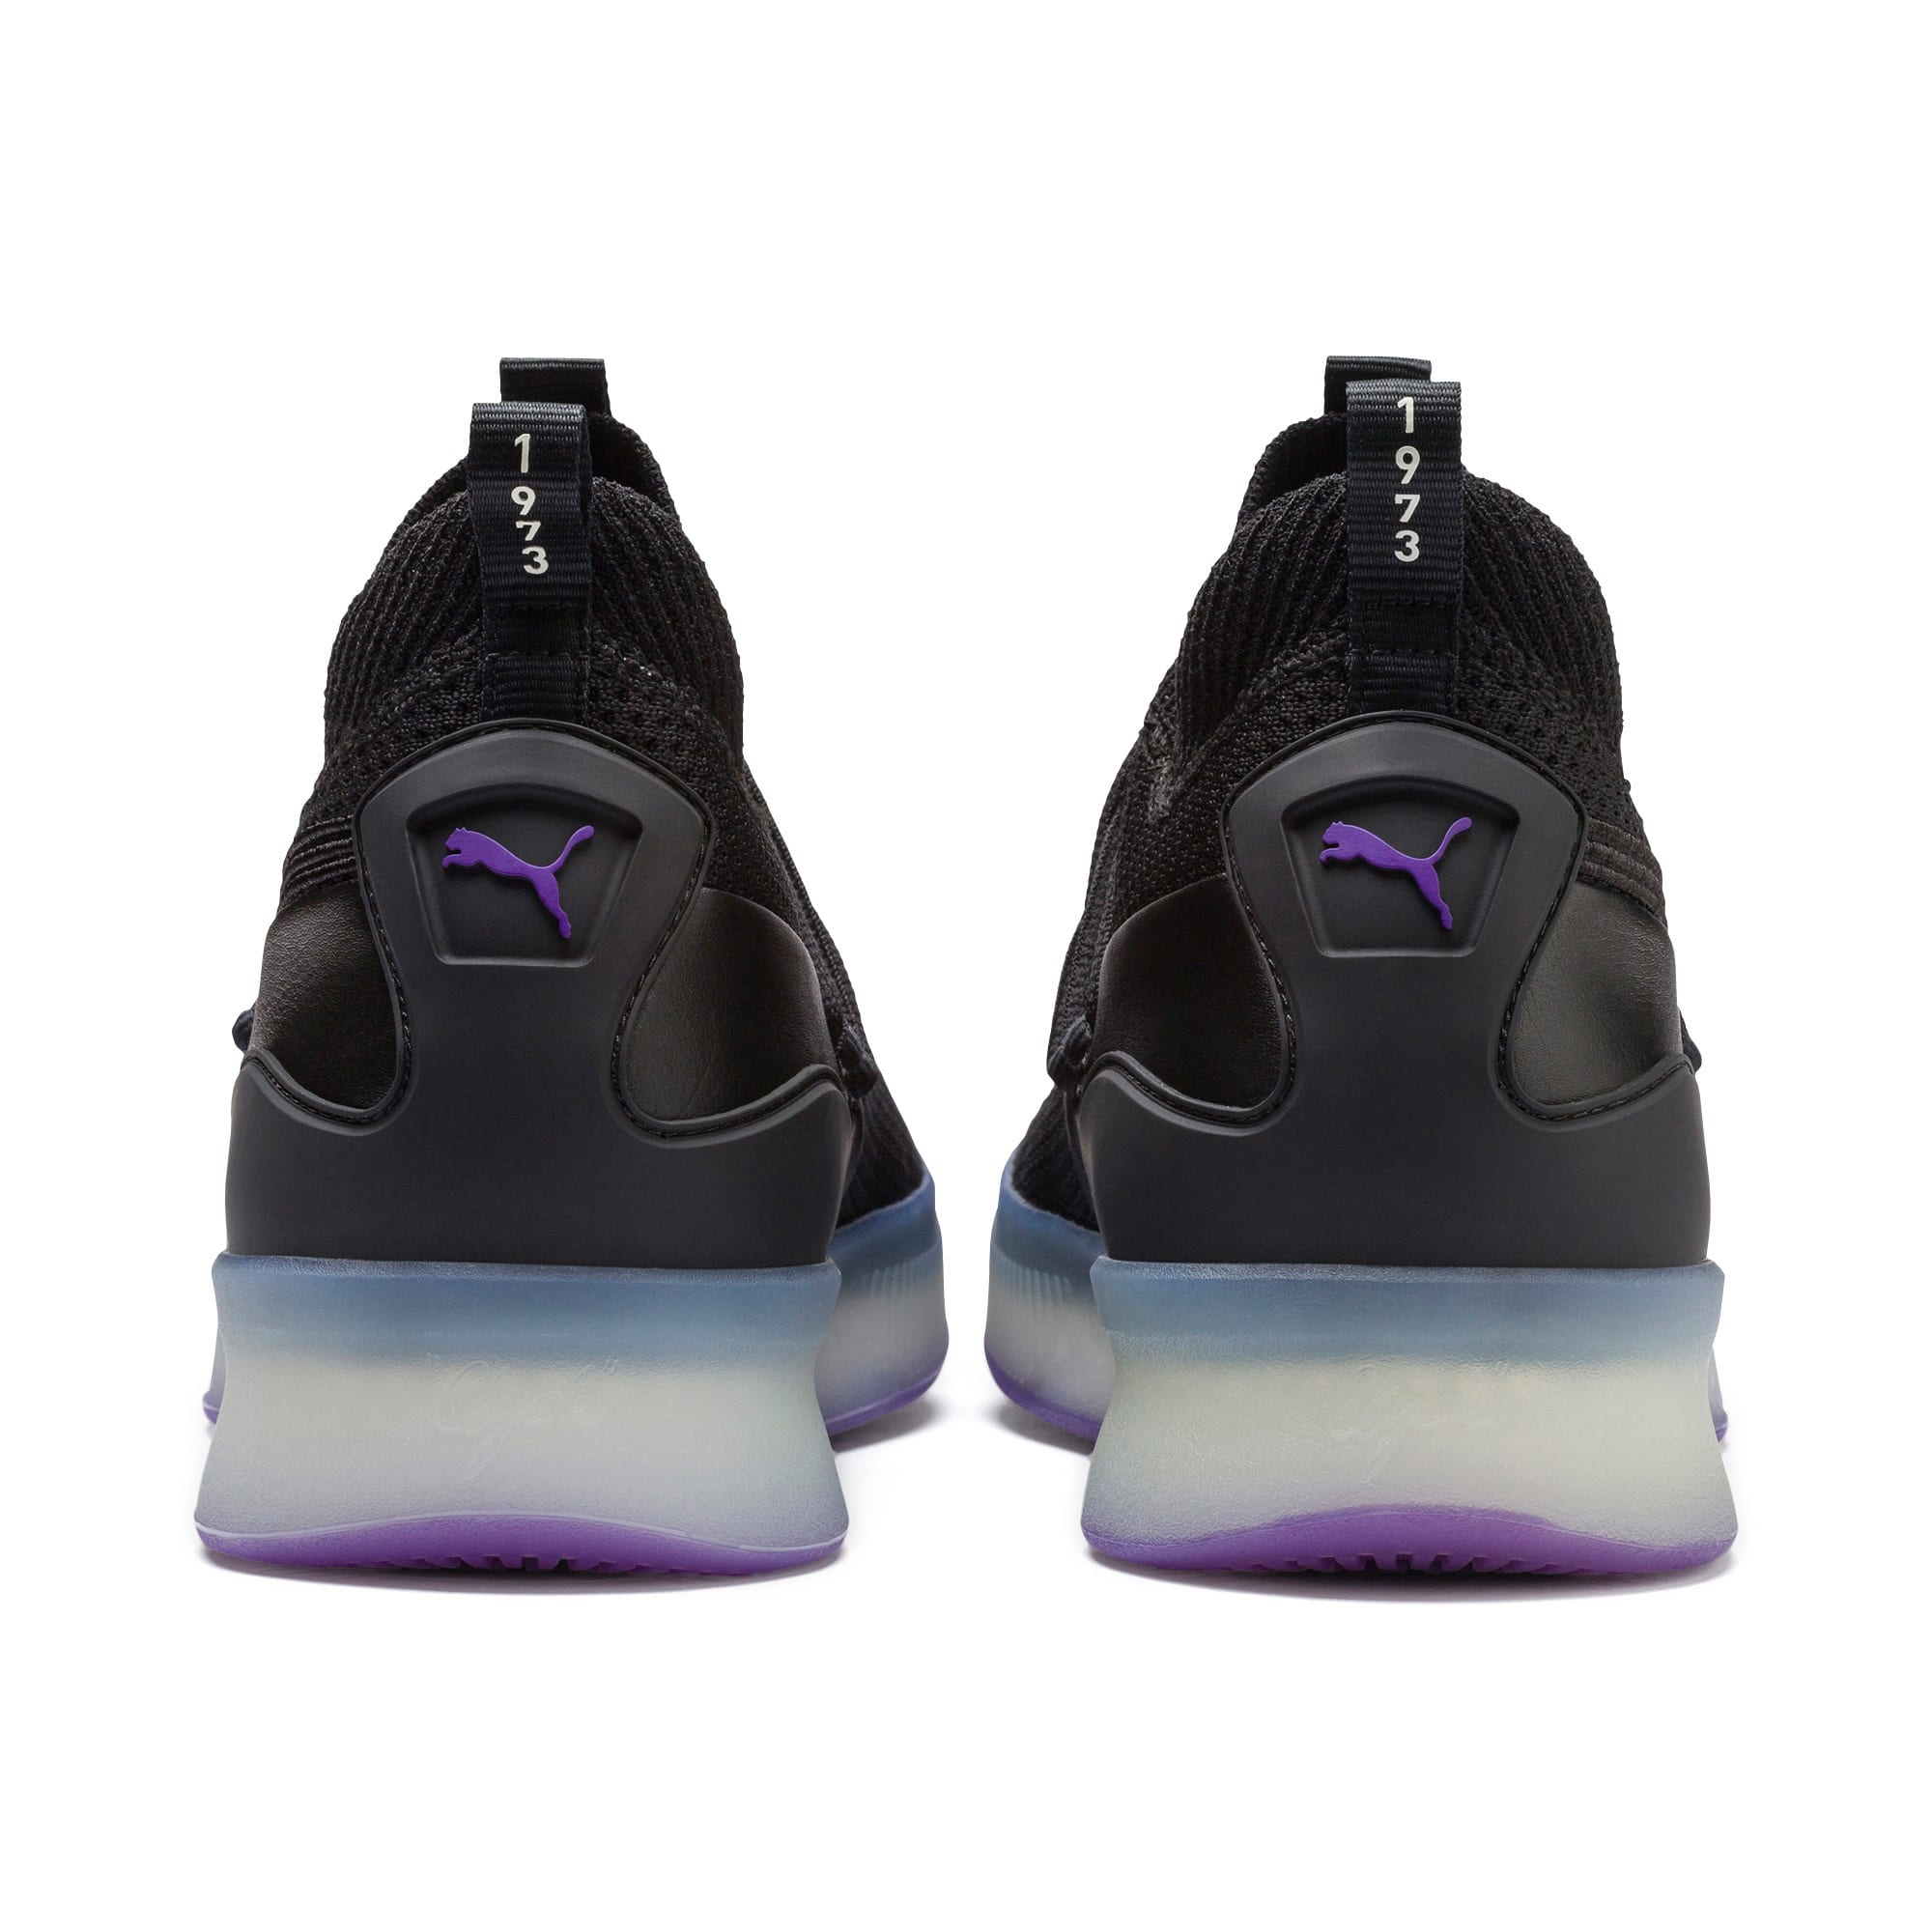 Thumbnail 3 of Clyde Court Disrupt Men's Basketball Shoes, Puma Black-ELECTRIC PURPLE, medium